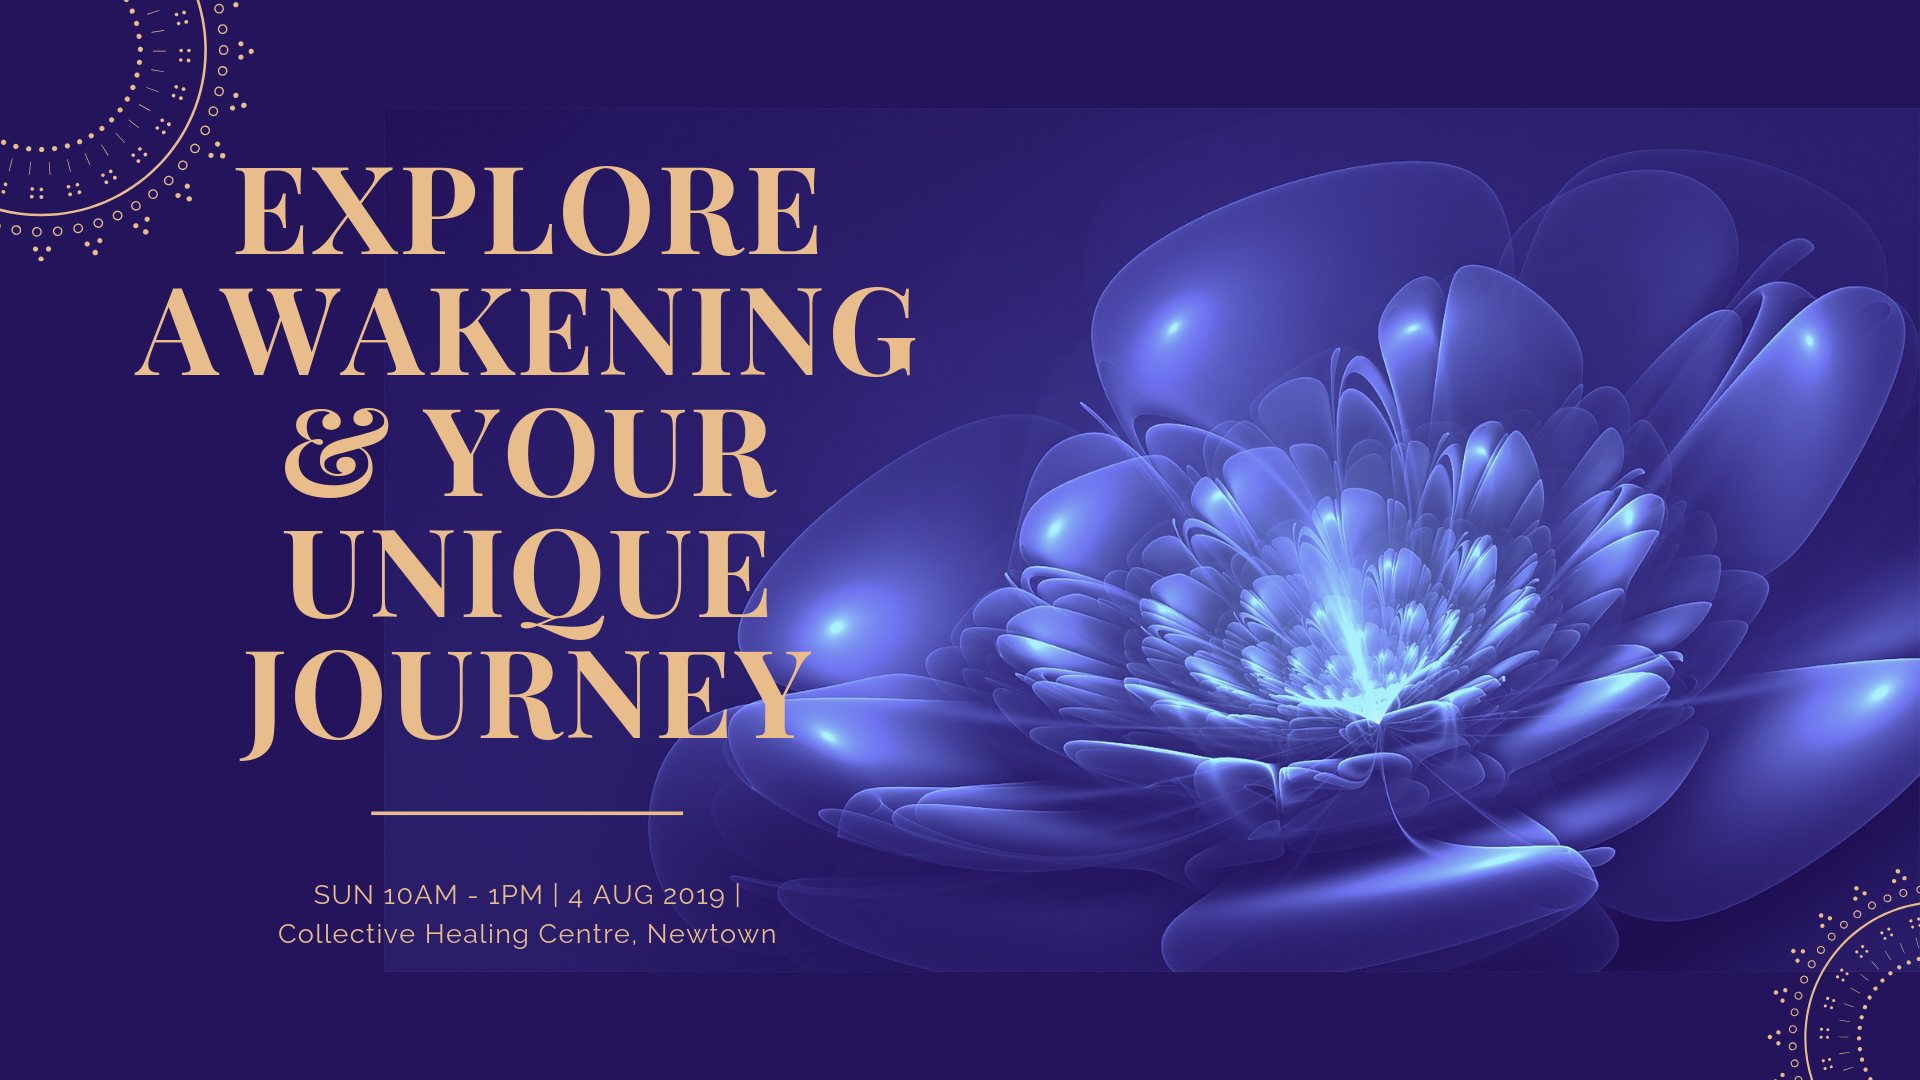 Explore Awakening & Your Unique Journey worksop image.